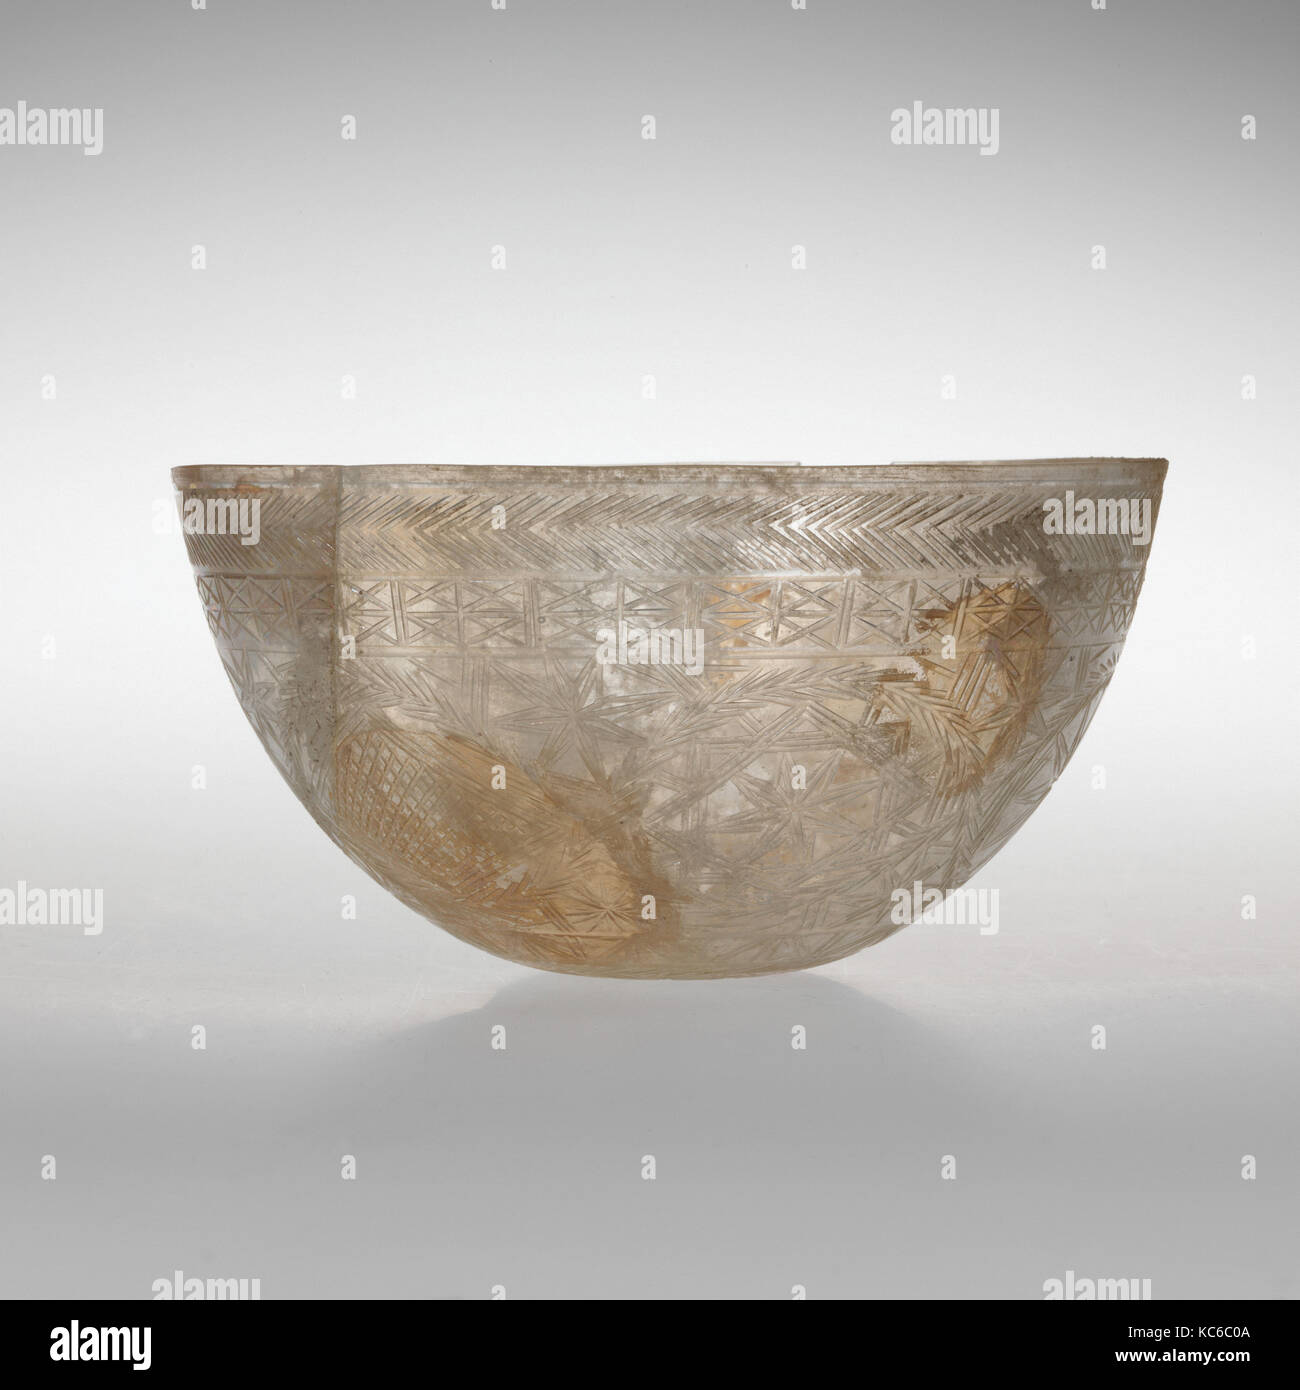 Glass bowl decorated with geometric patterns, 4th century A.D Stock Photo